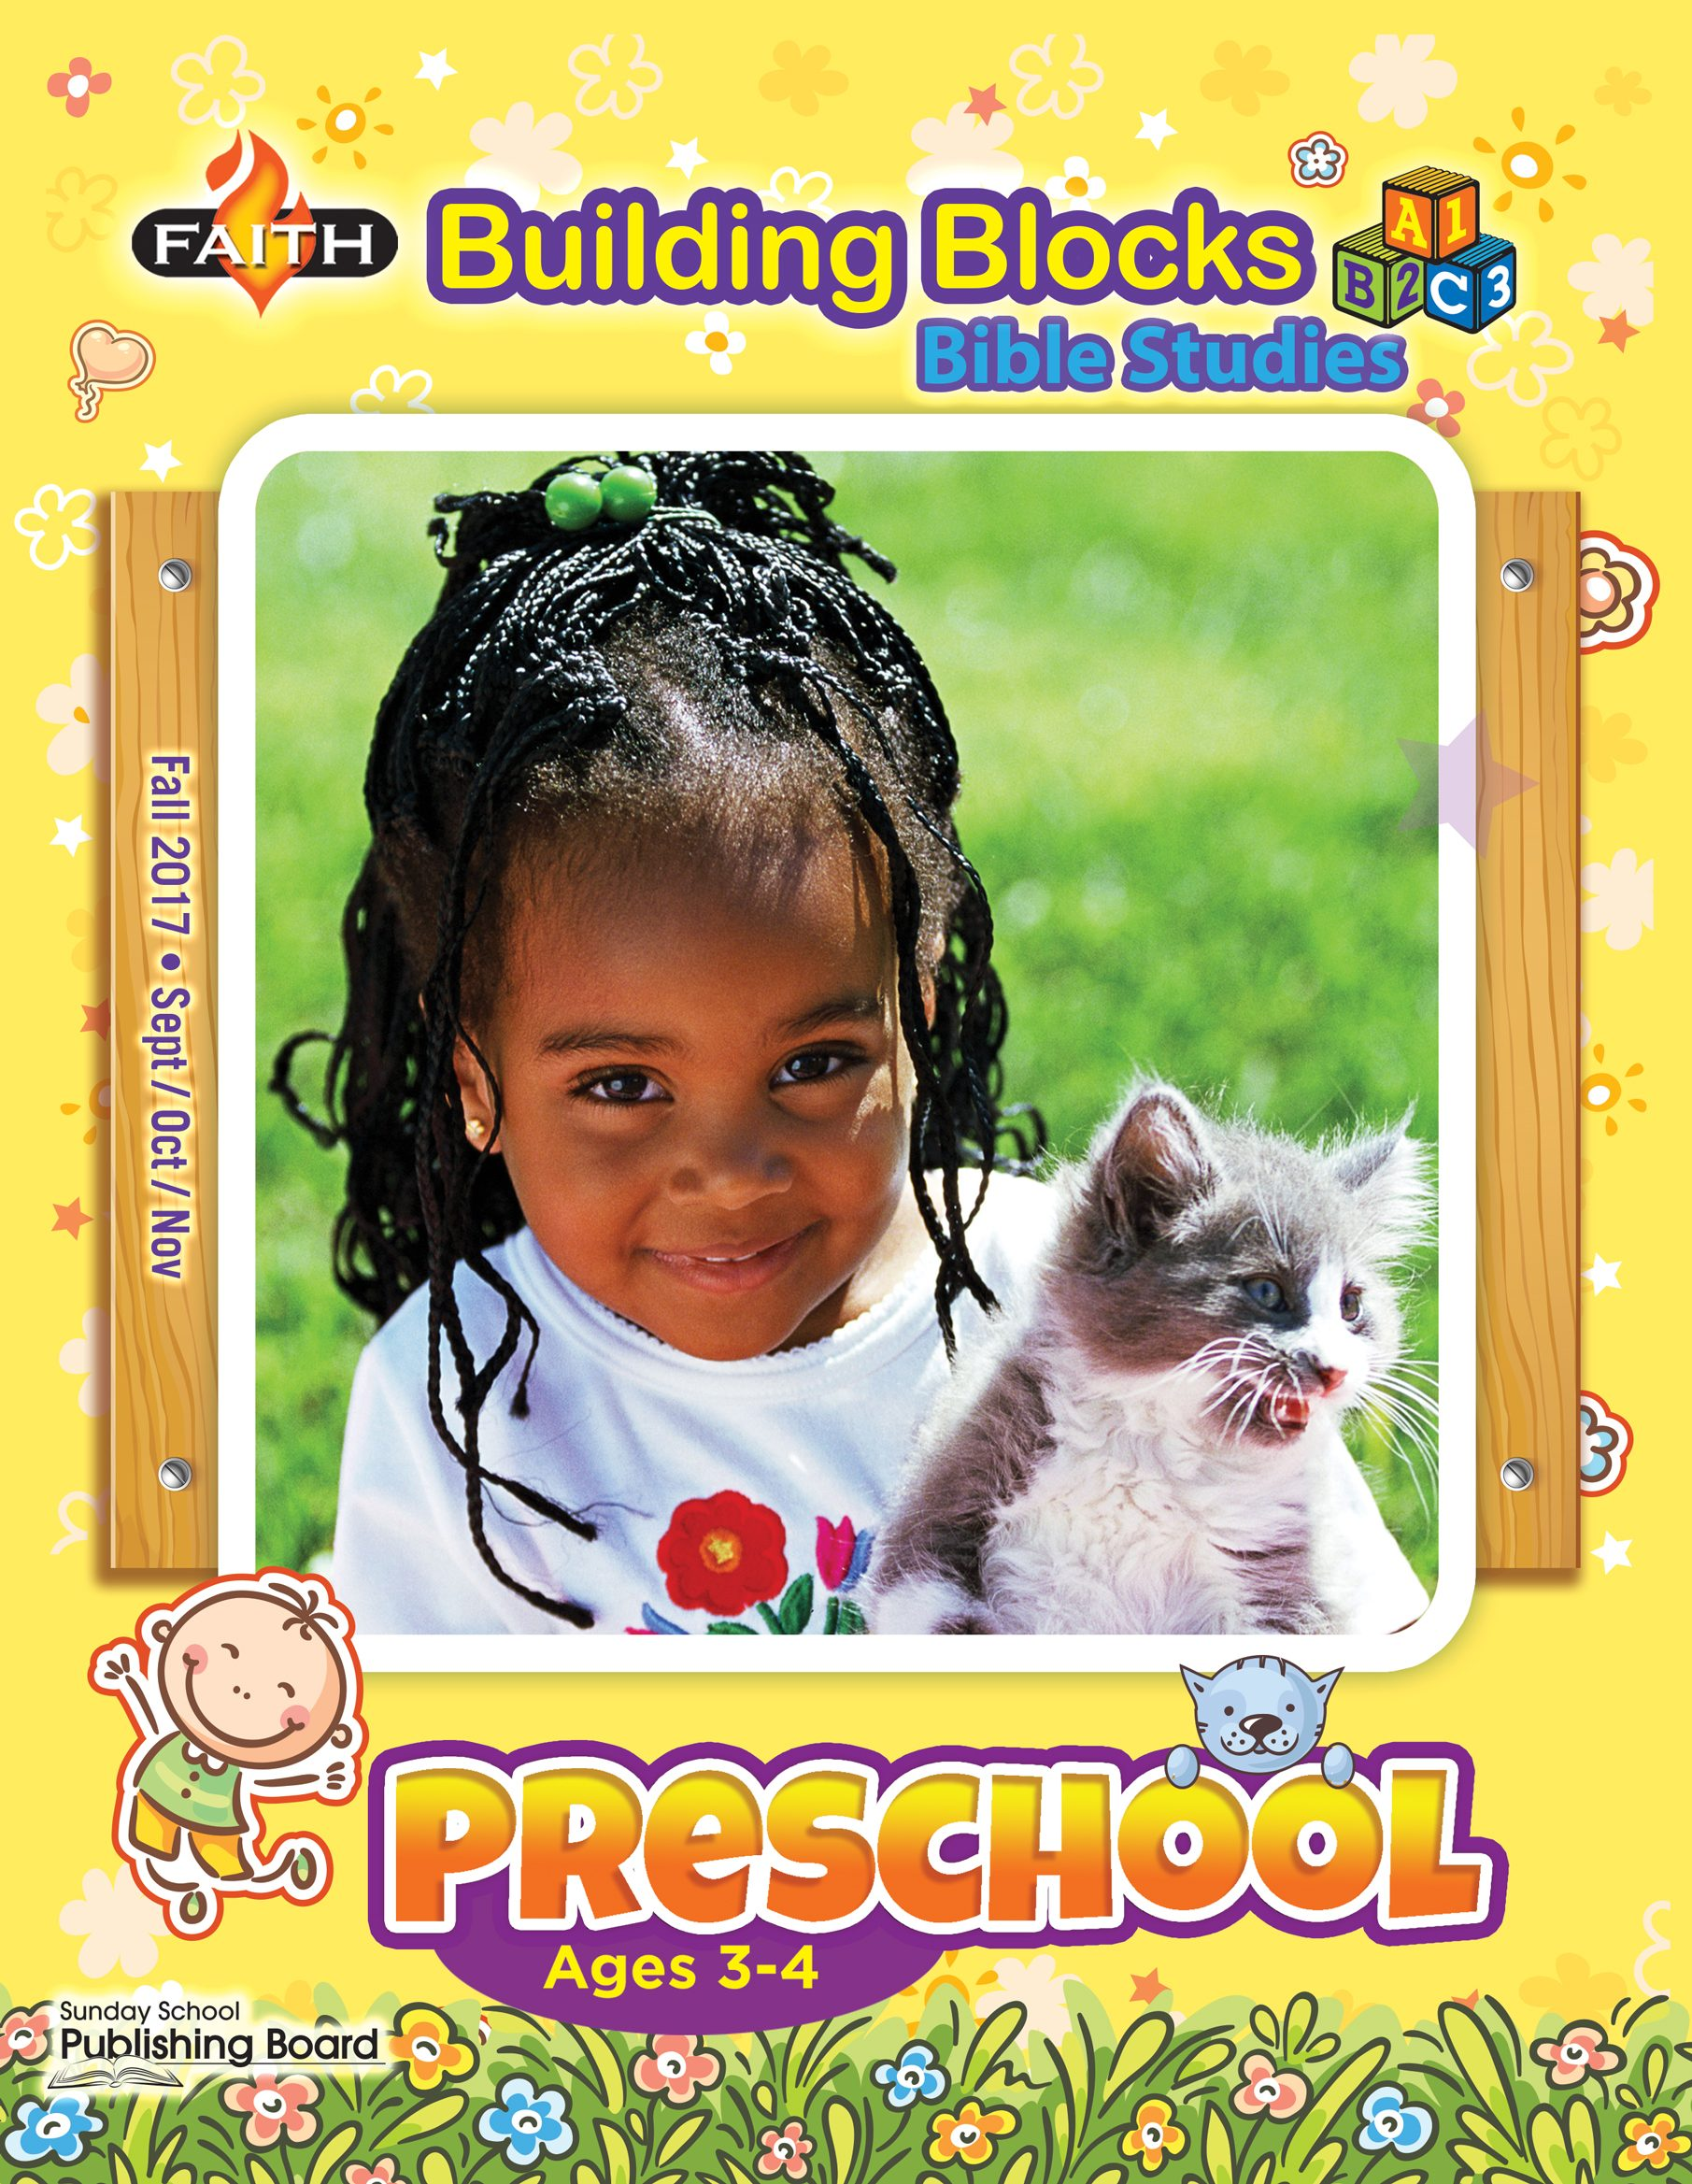 Faith Building Blocks Bible Studies, Preschool (Ages 3-4)